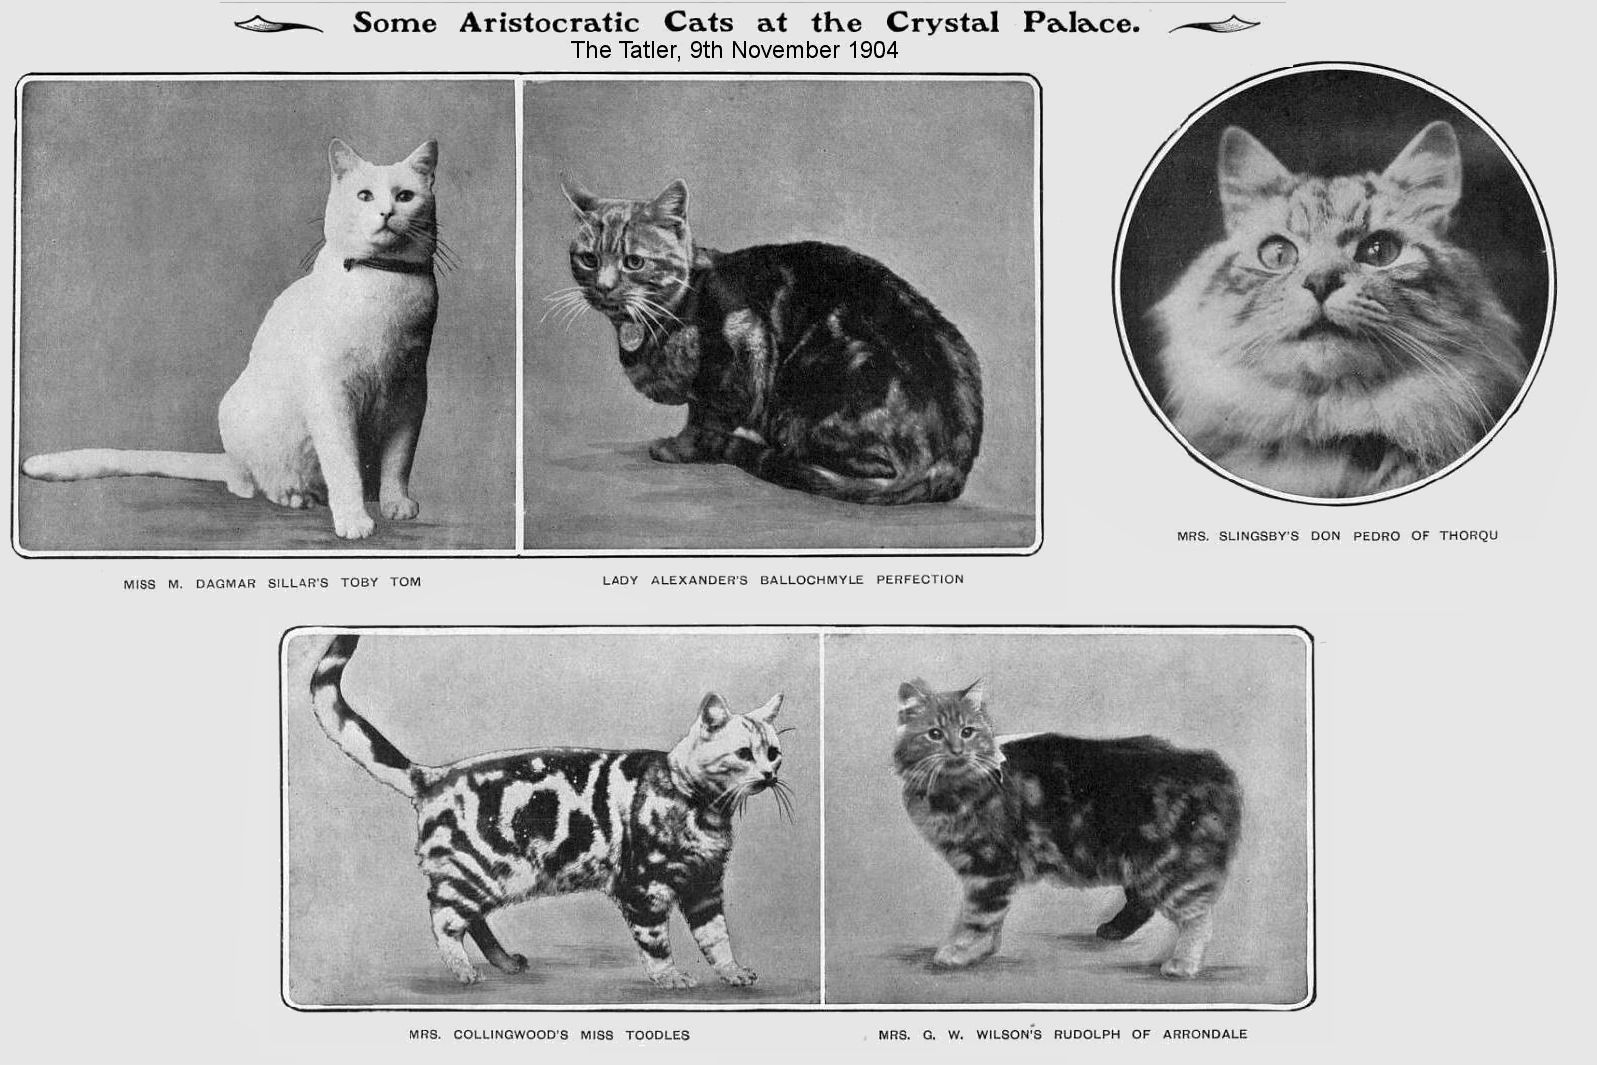 crystal palace cat show